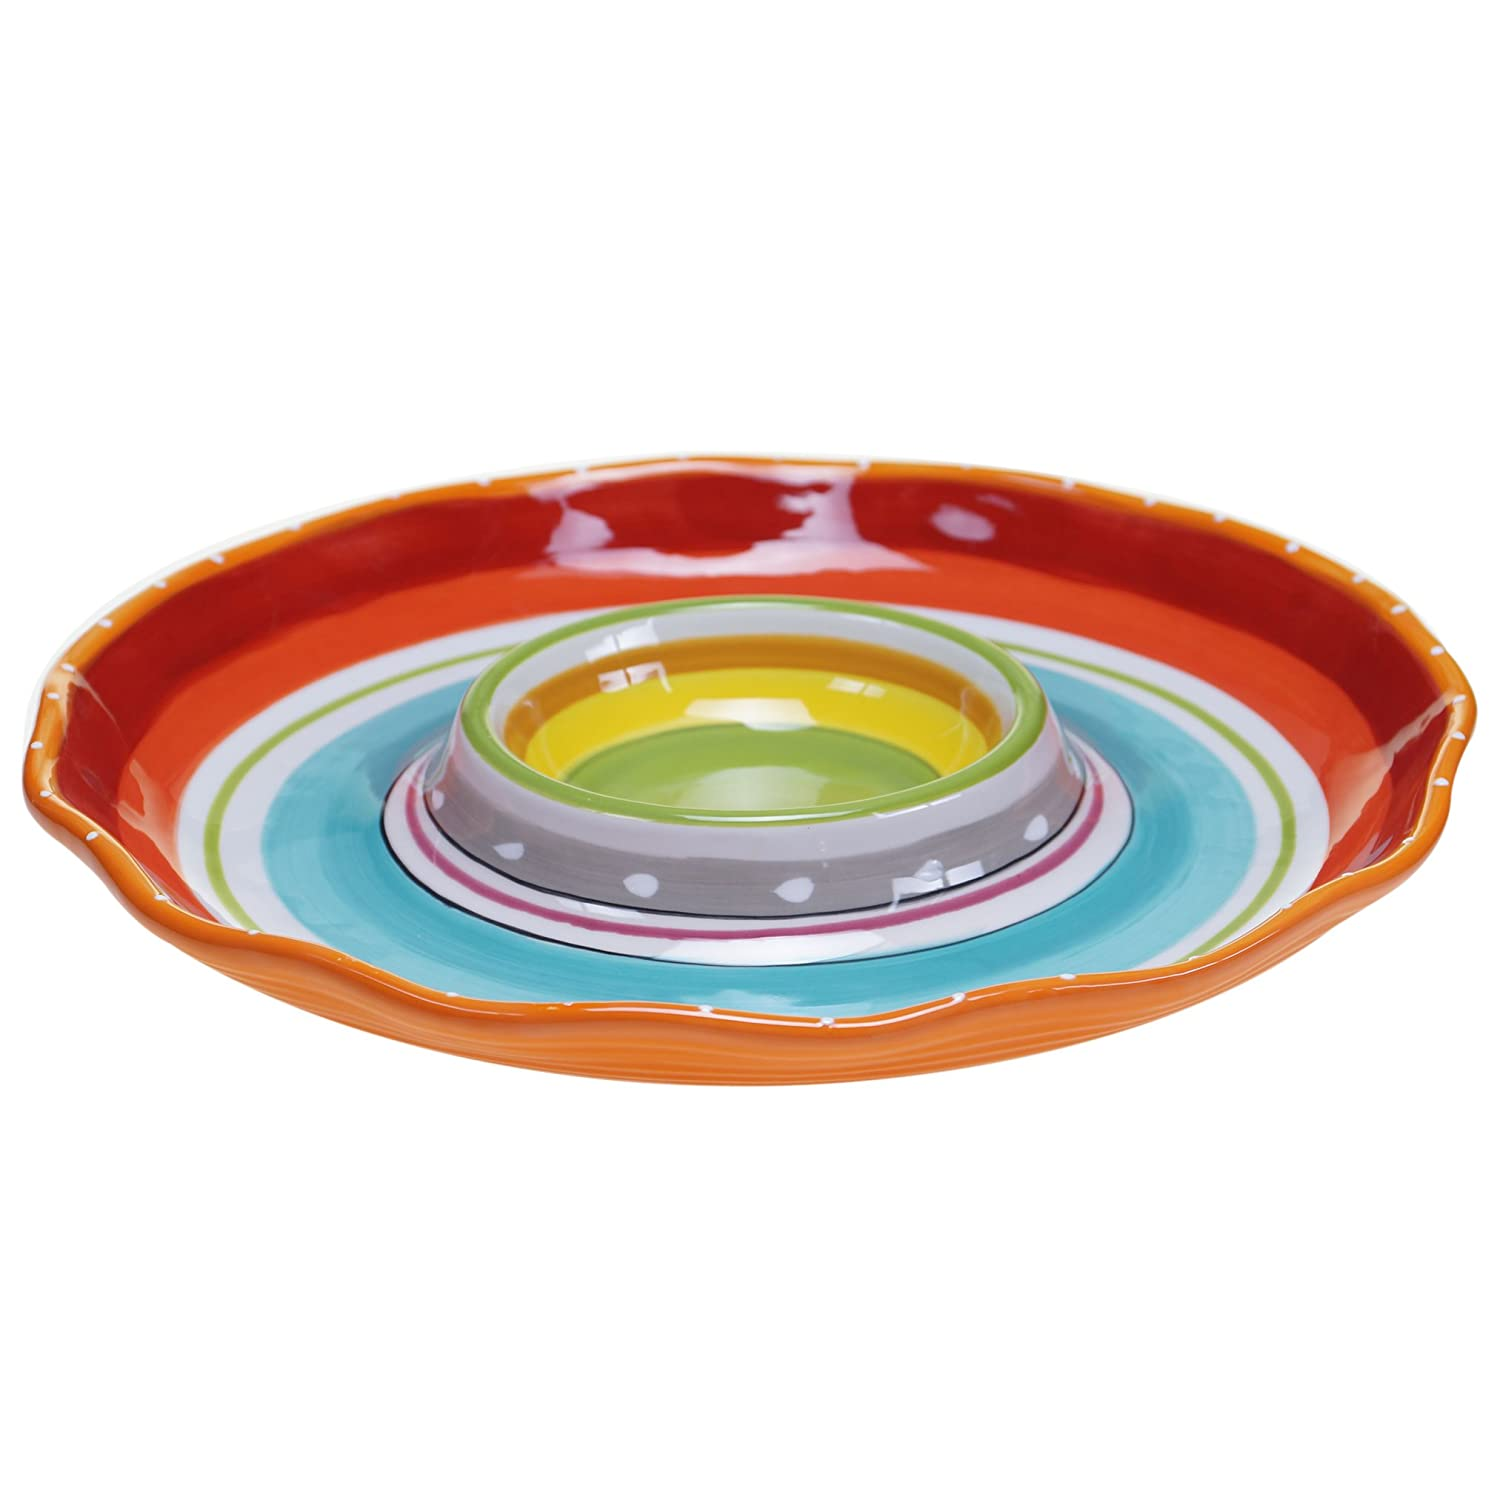 Certified International 25638 Mariachi Chip and Dip Serving Set, 13.5-Inch, Multicolor